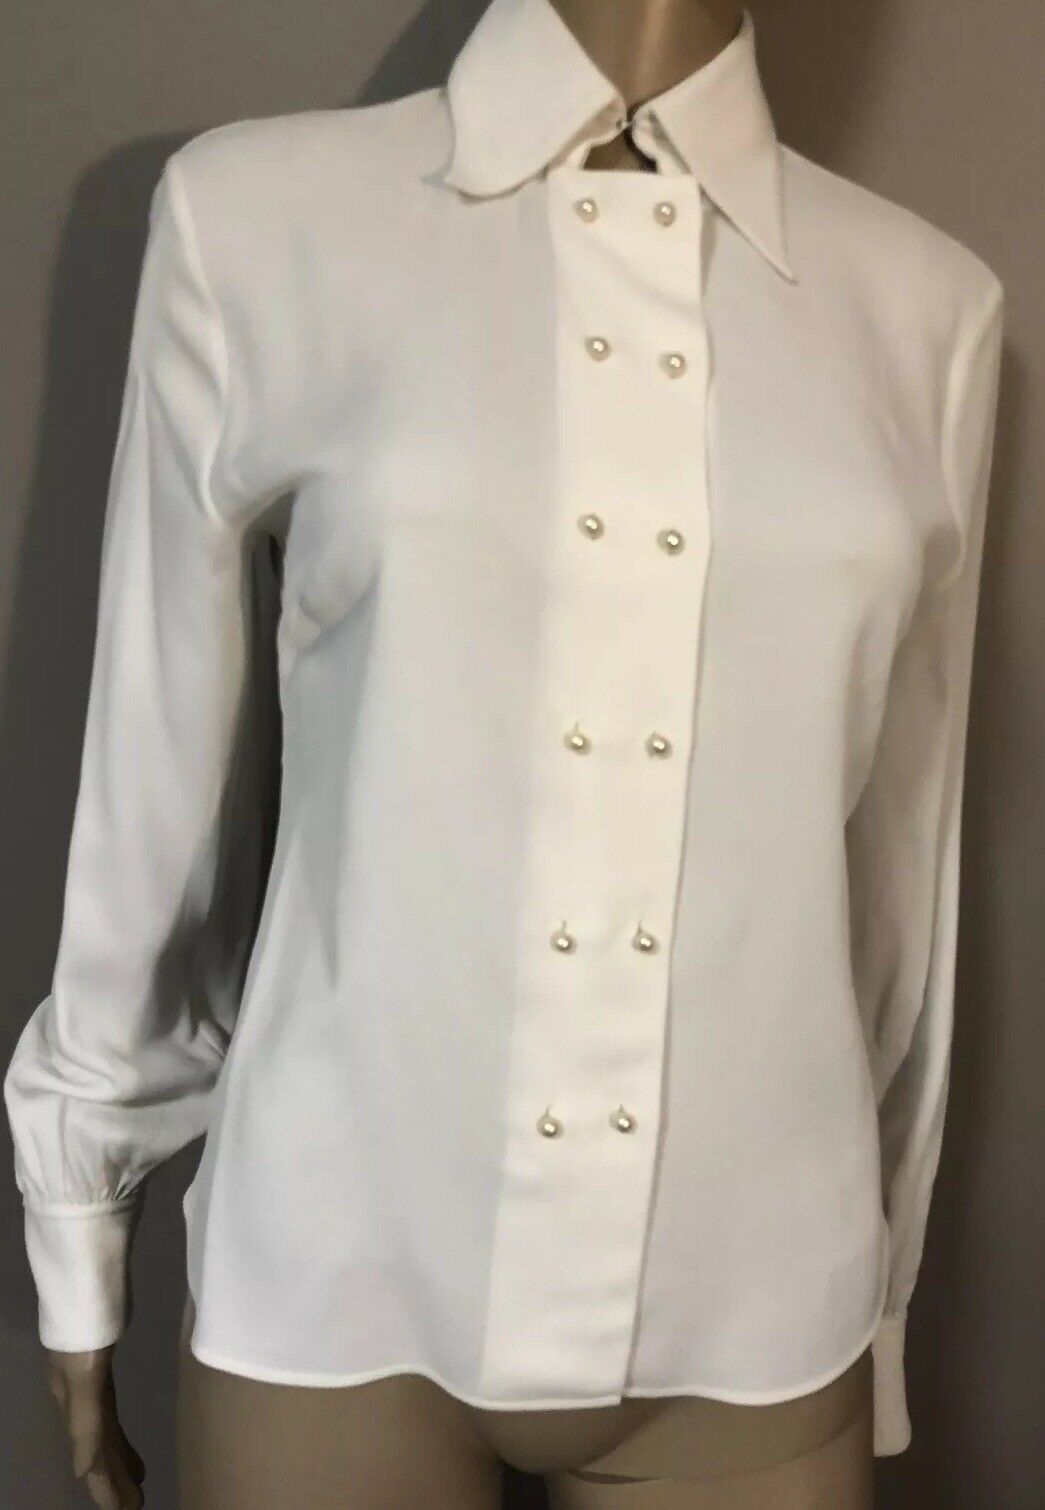 Weiß Double Breasted Blouse with Pearl buttons by Celine sz FR  36 US 4